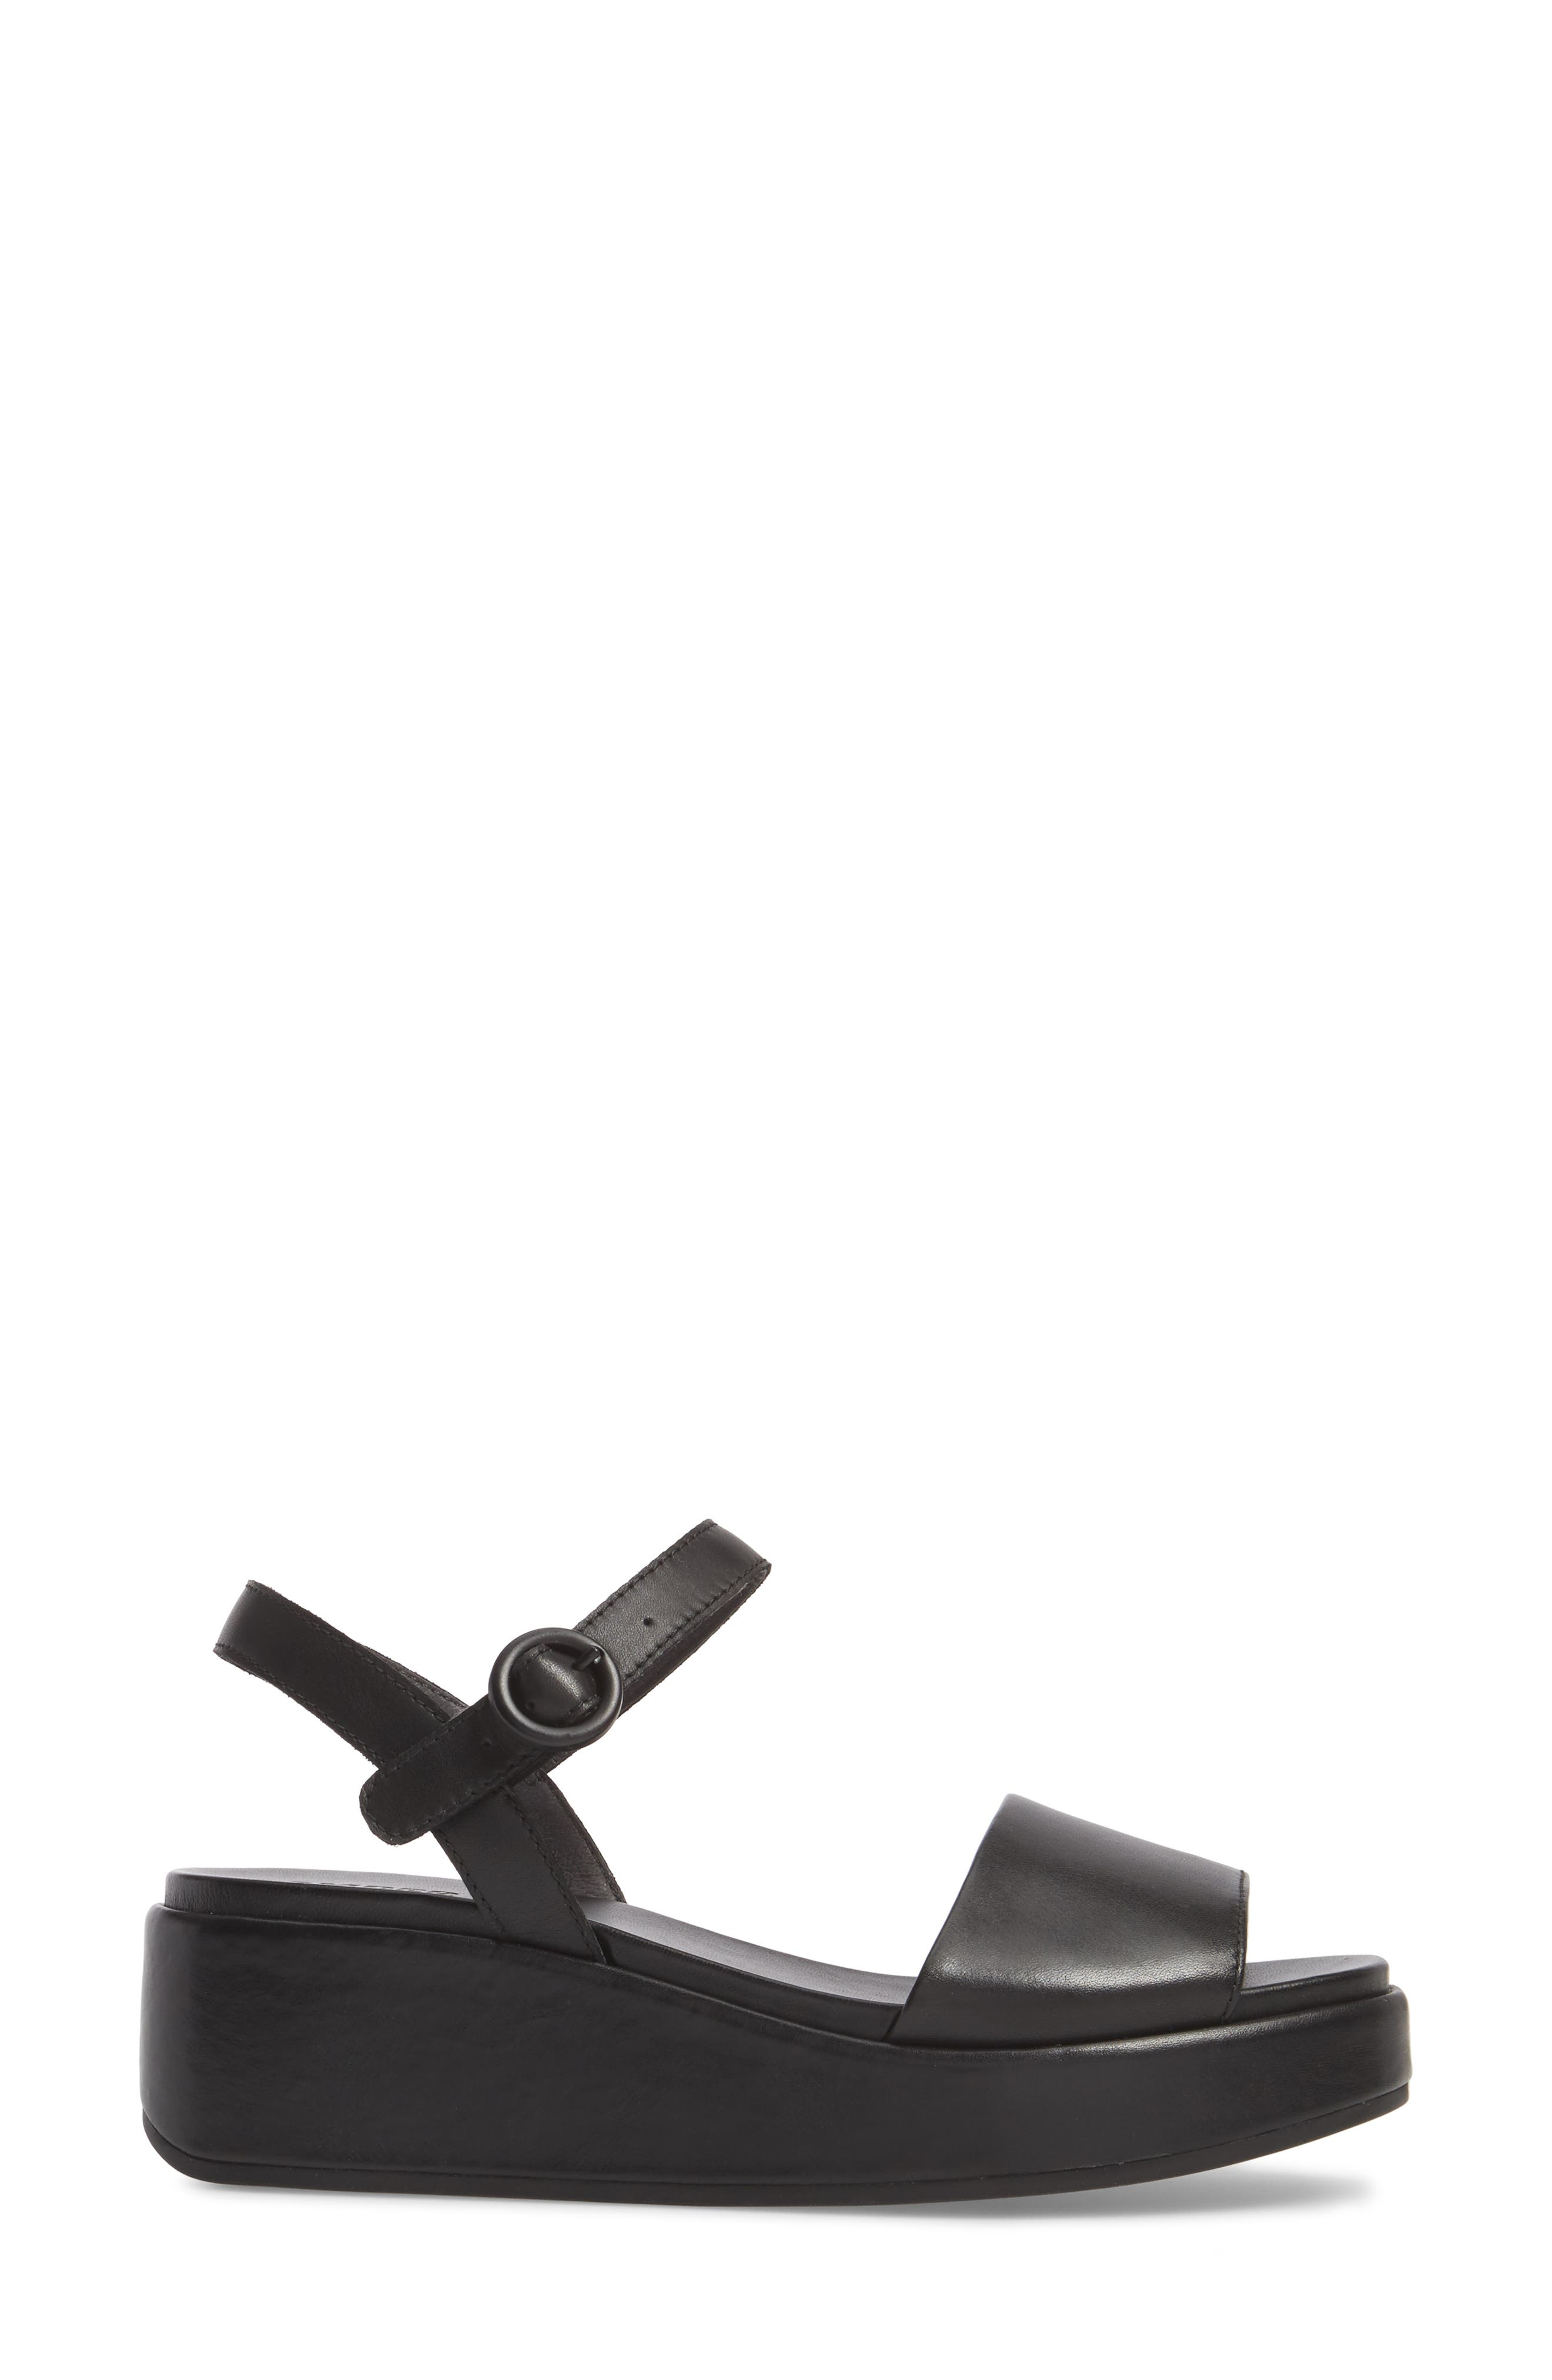 Misia Platform Wedge Sandal,                             Alternate thumbnail 3, color,                             001